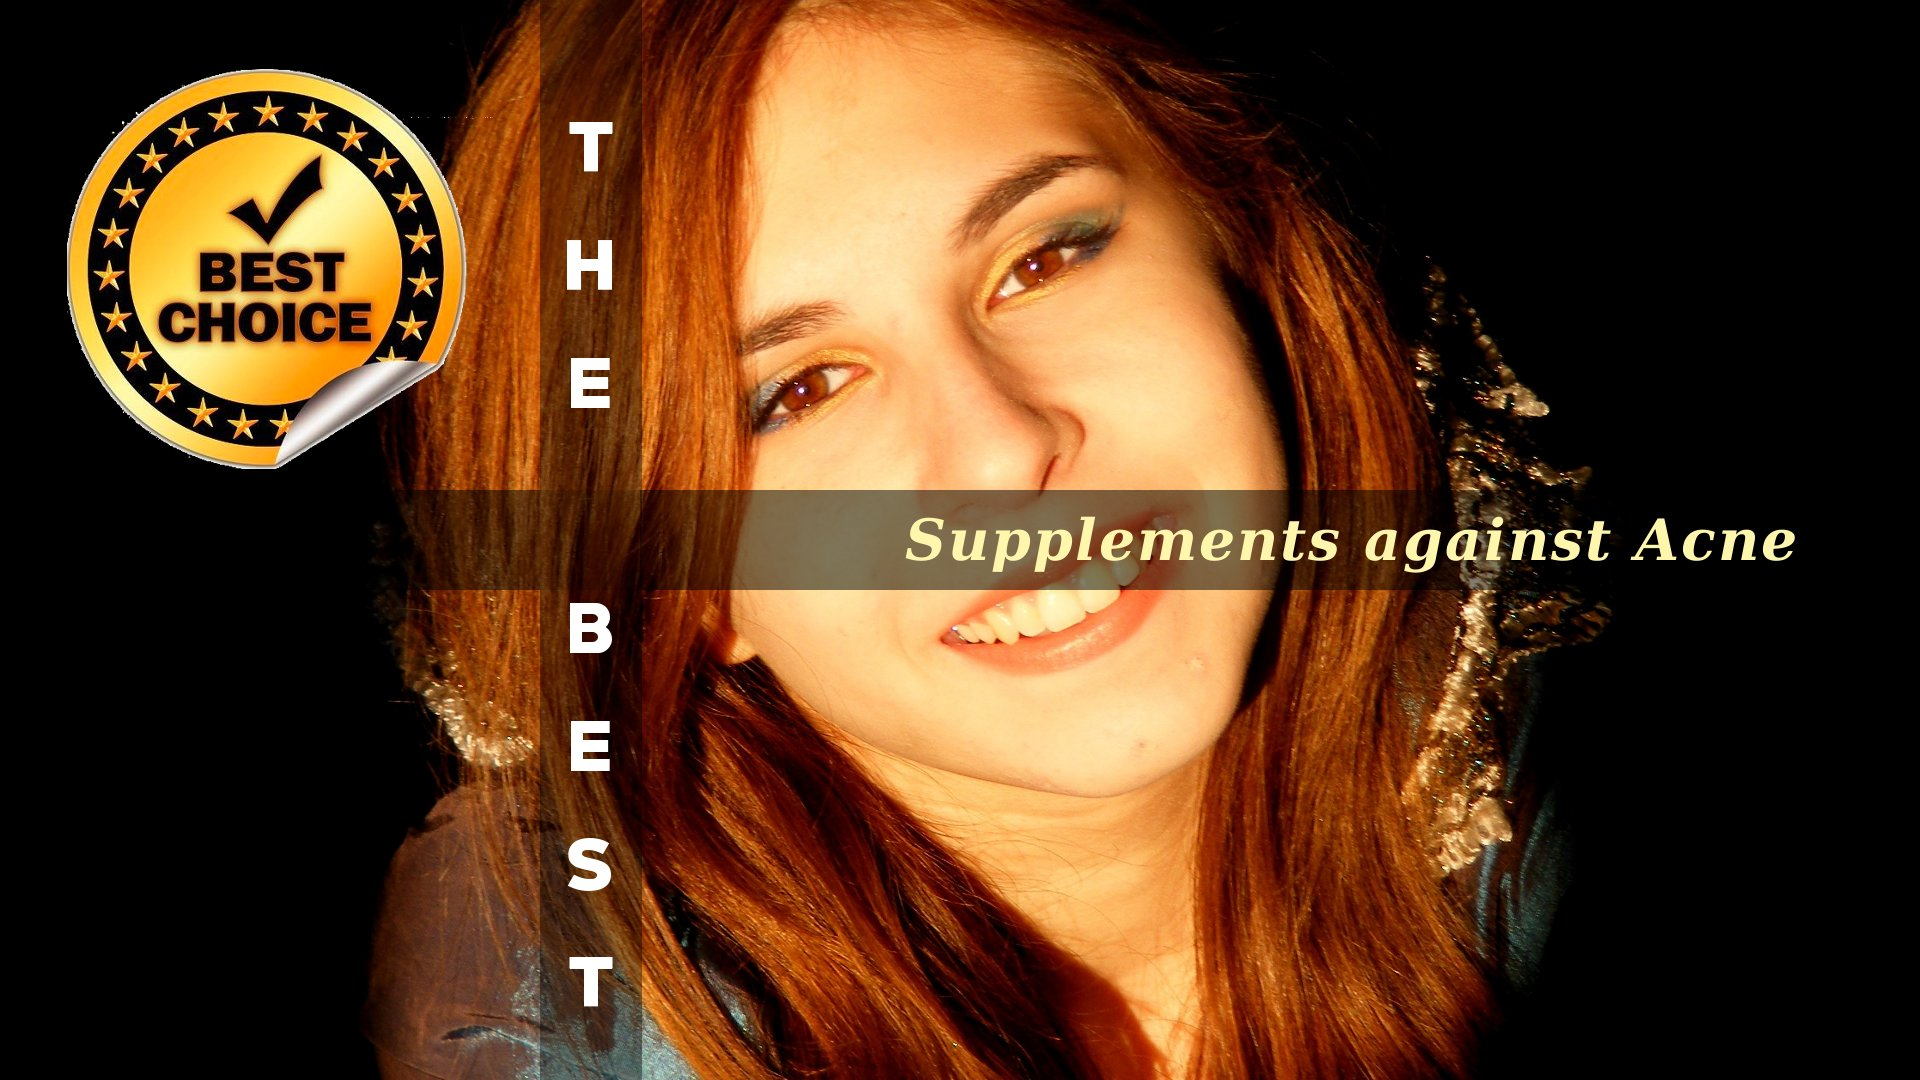 The Supplements against Acne